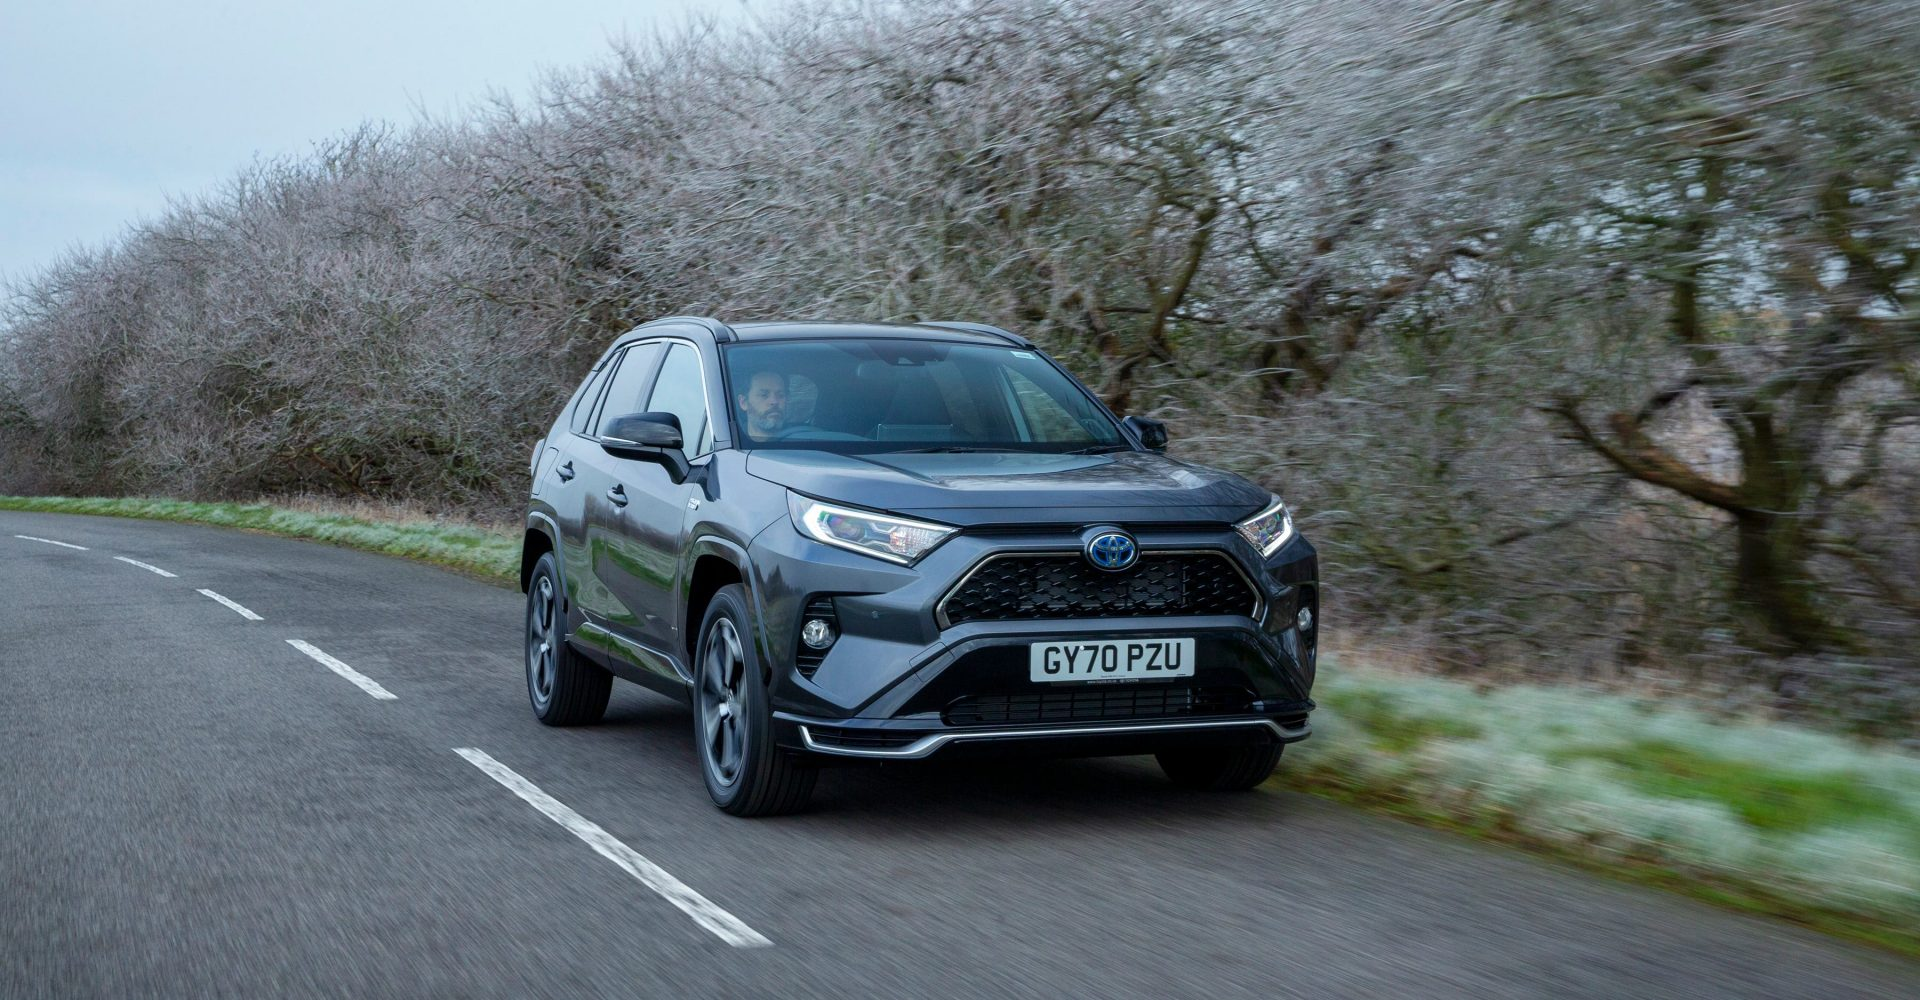 First Drive: Can a plug-in hybrid powertrain further the Toyota RAV4's appeal?